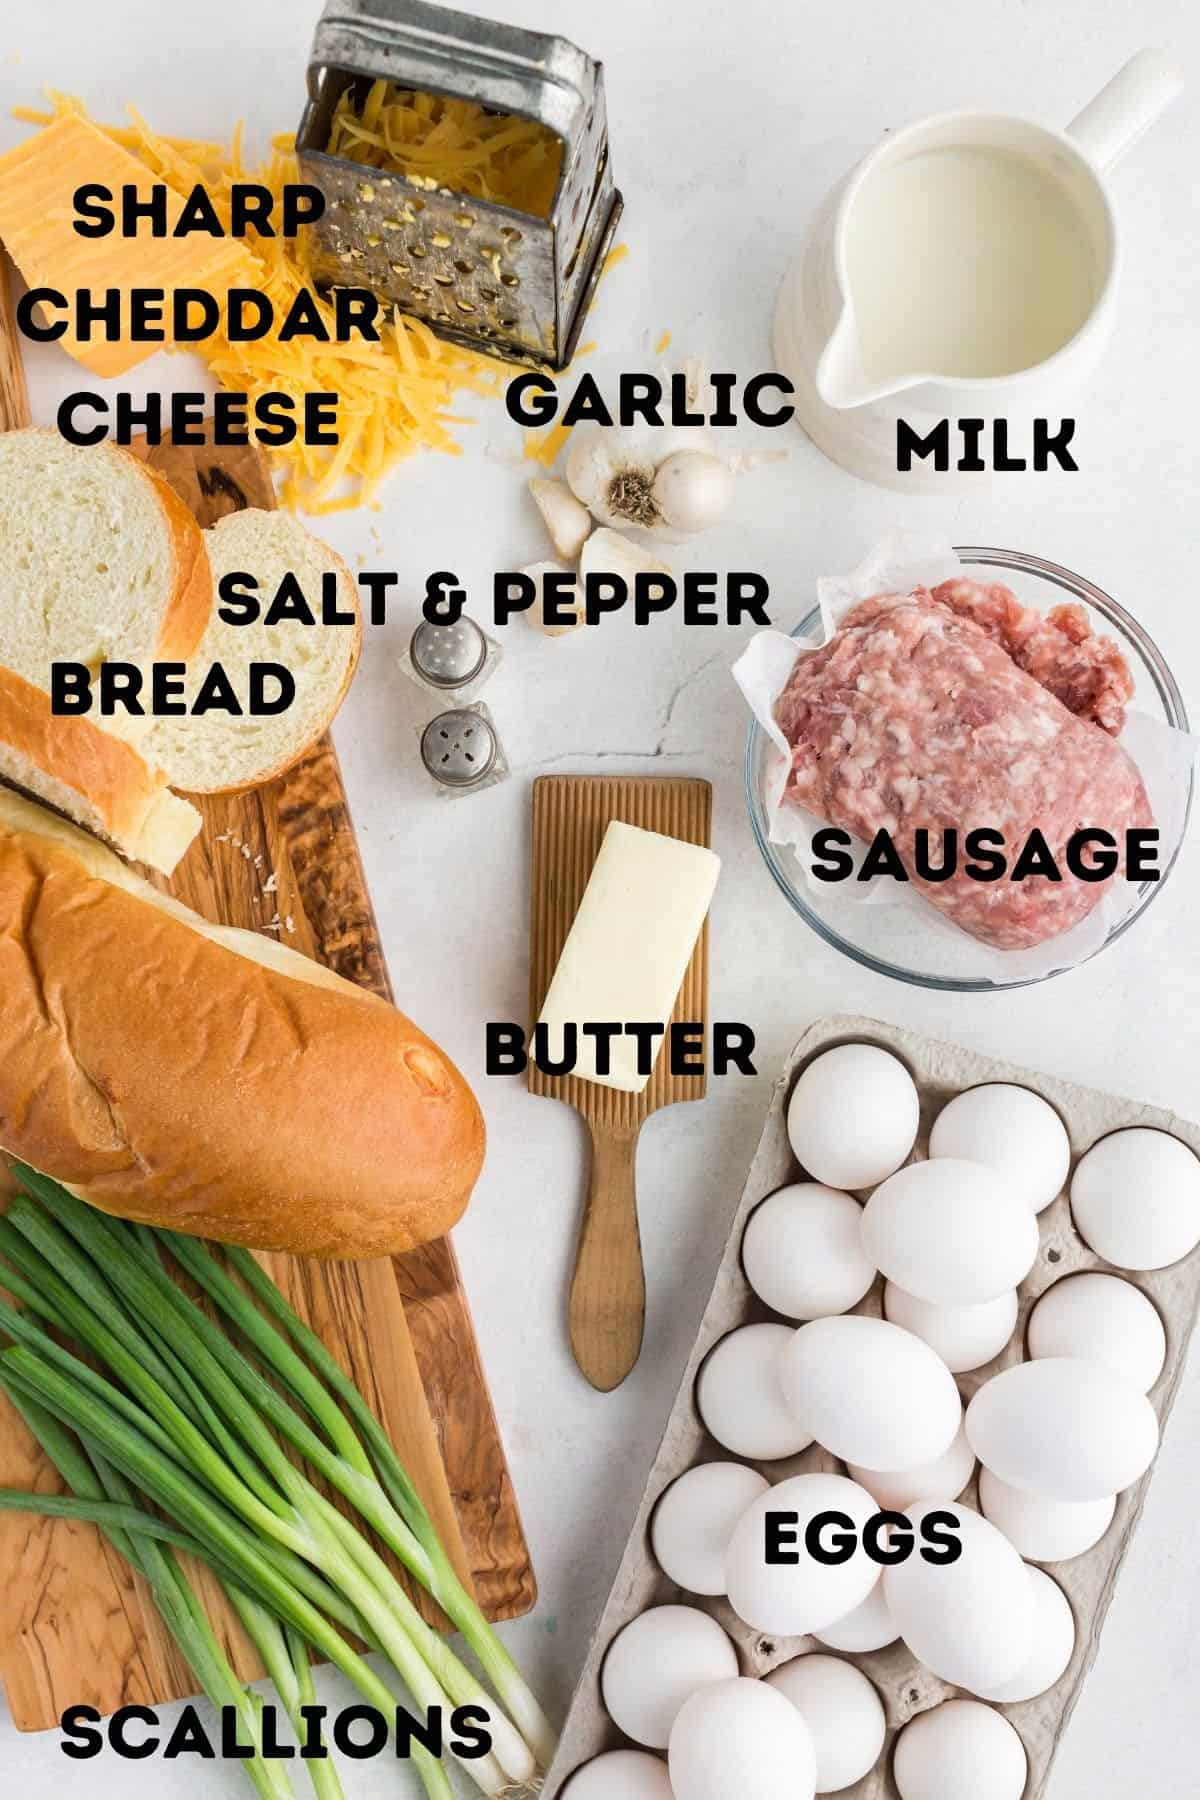 Ingredients for an egg and sausage Christmas breakfast casserole.